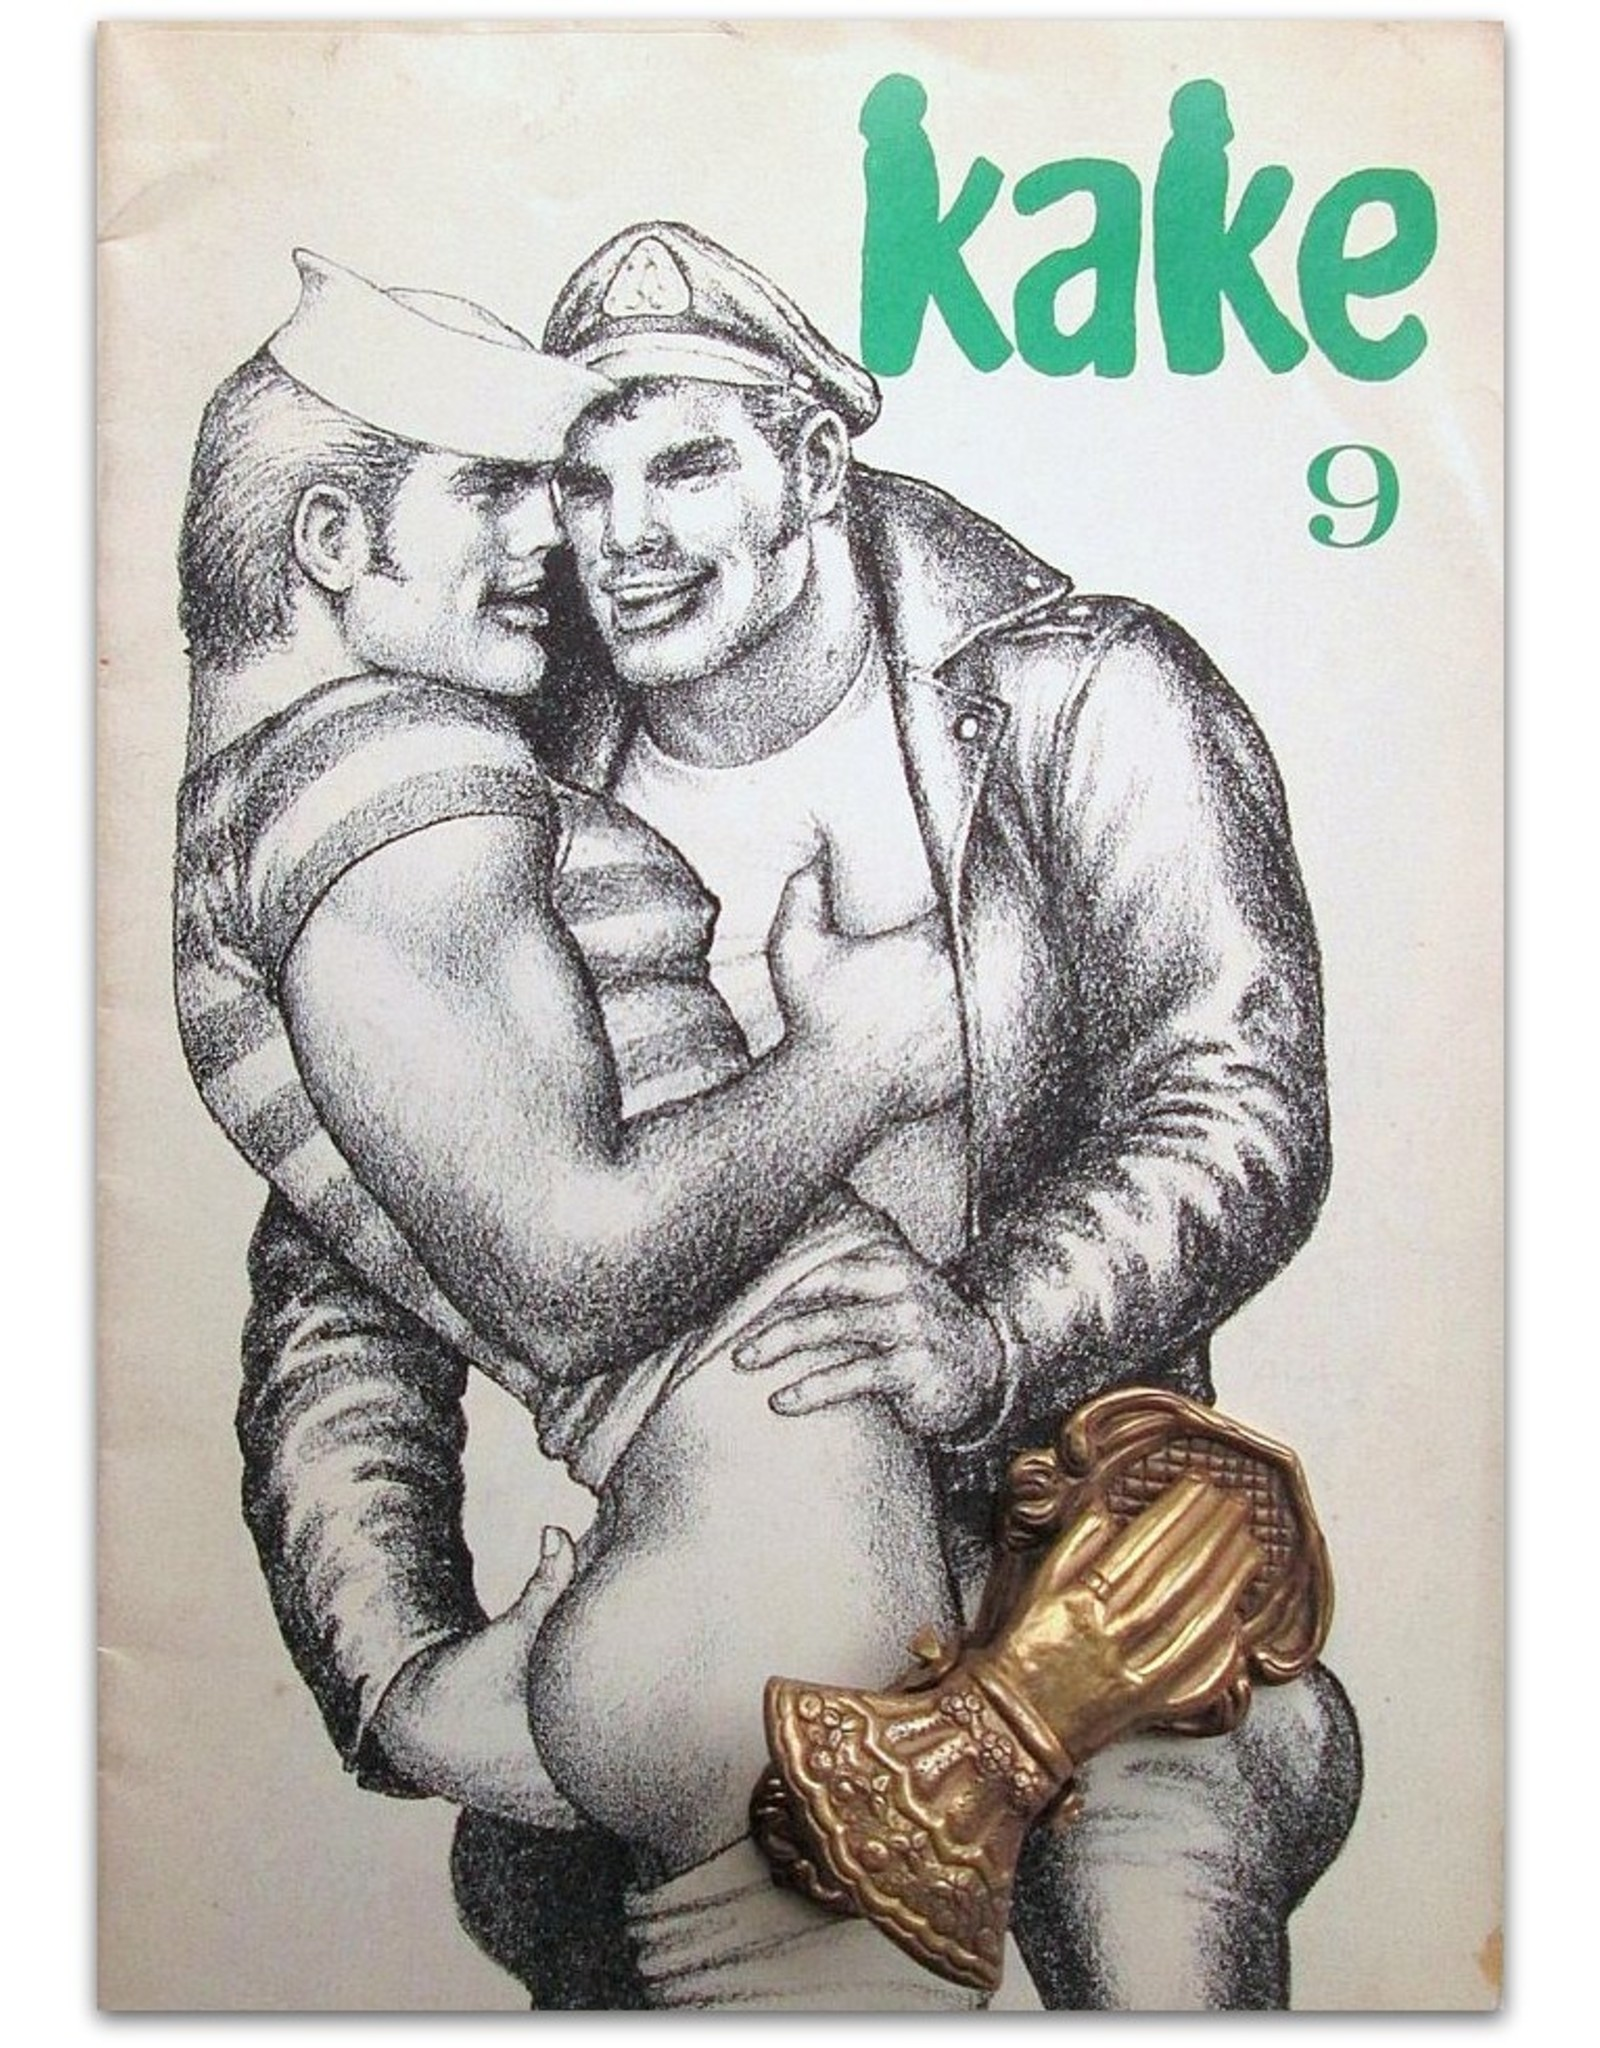 Tom of Finland - Kake 9 - [The Cock d'Or]